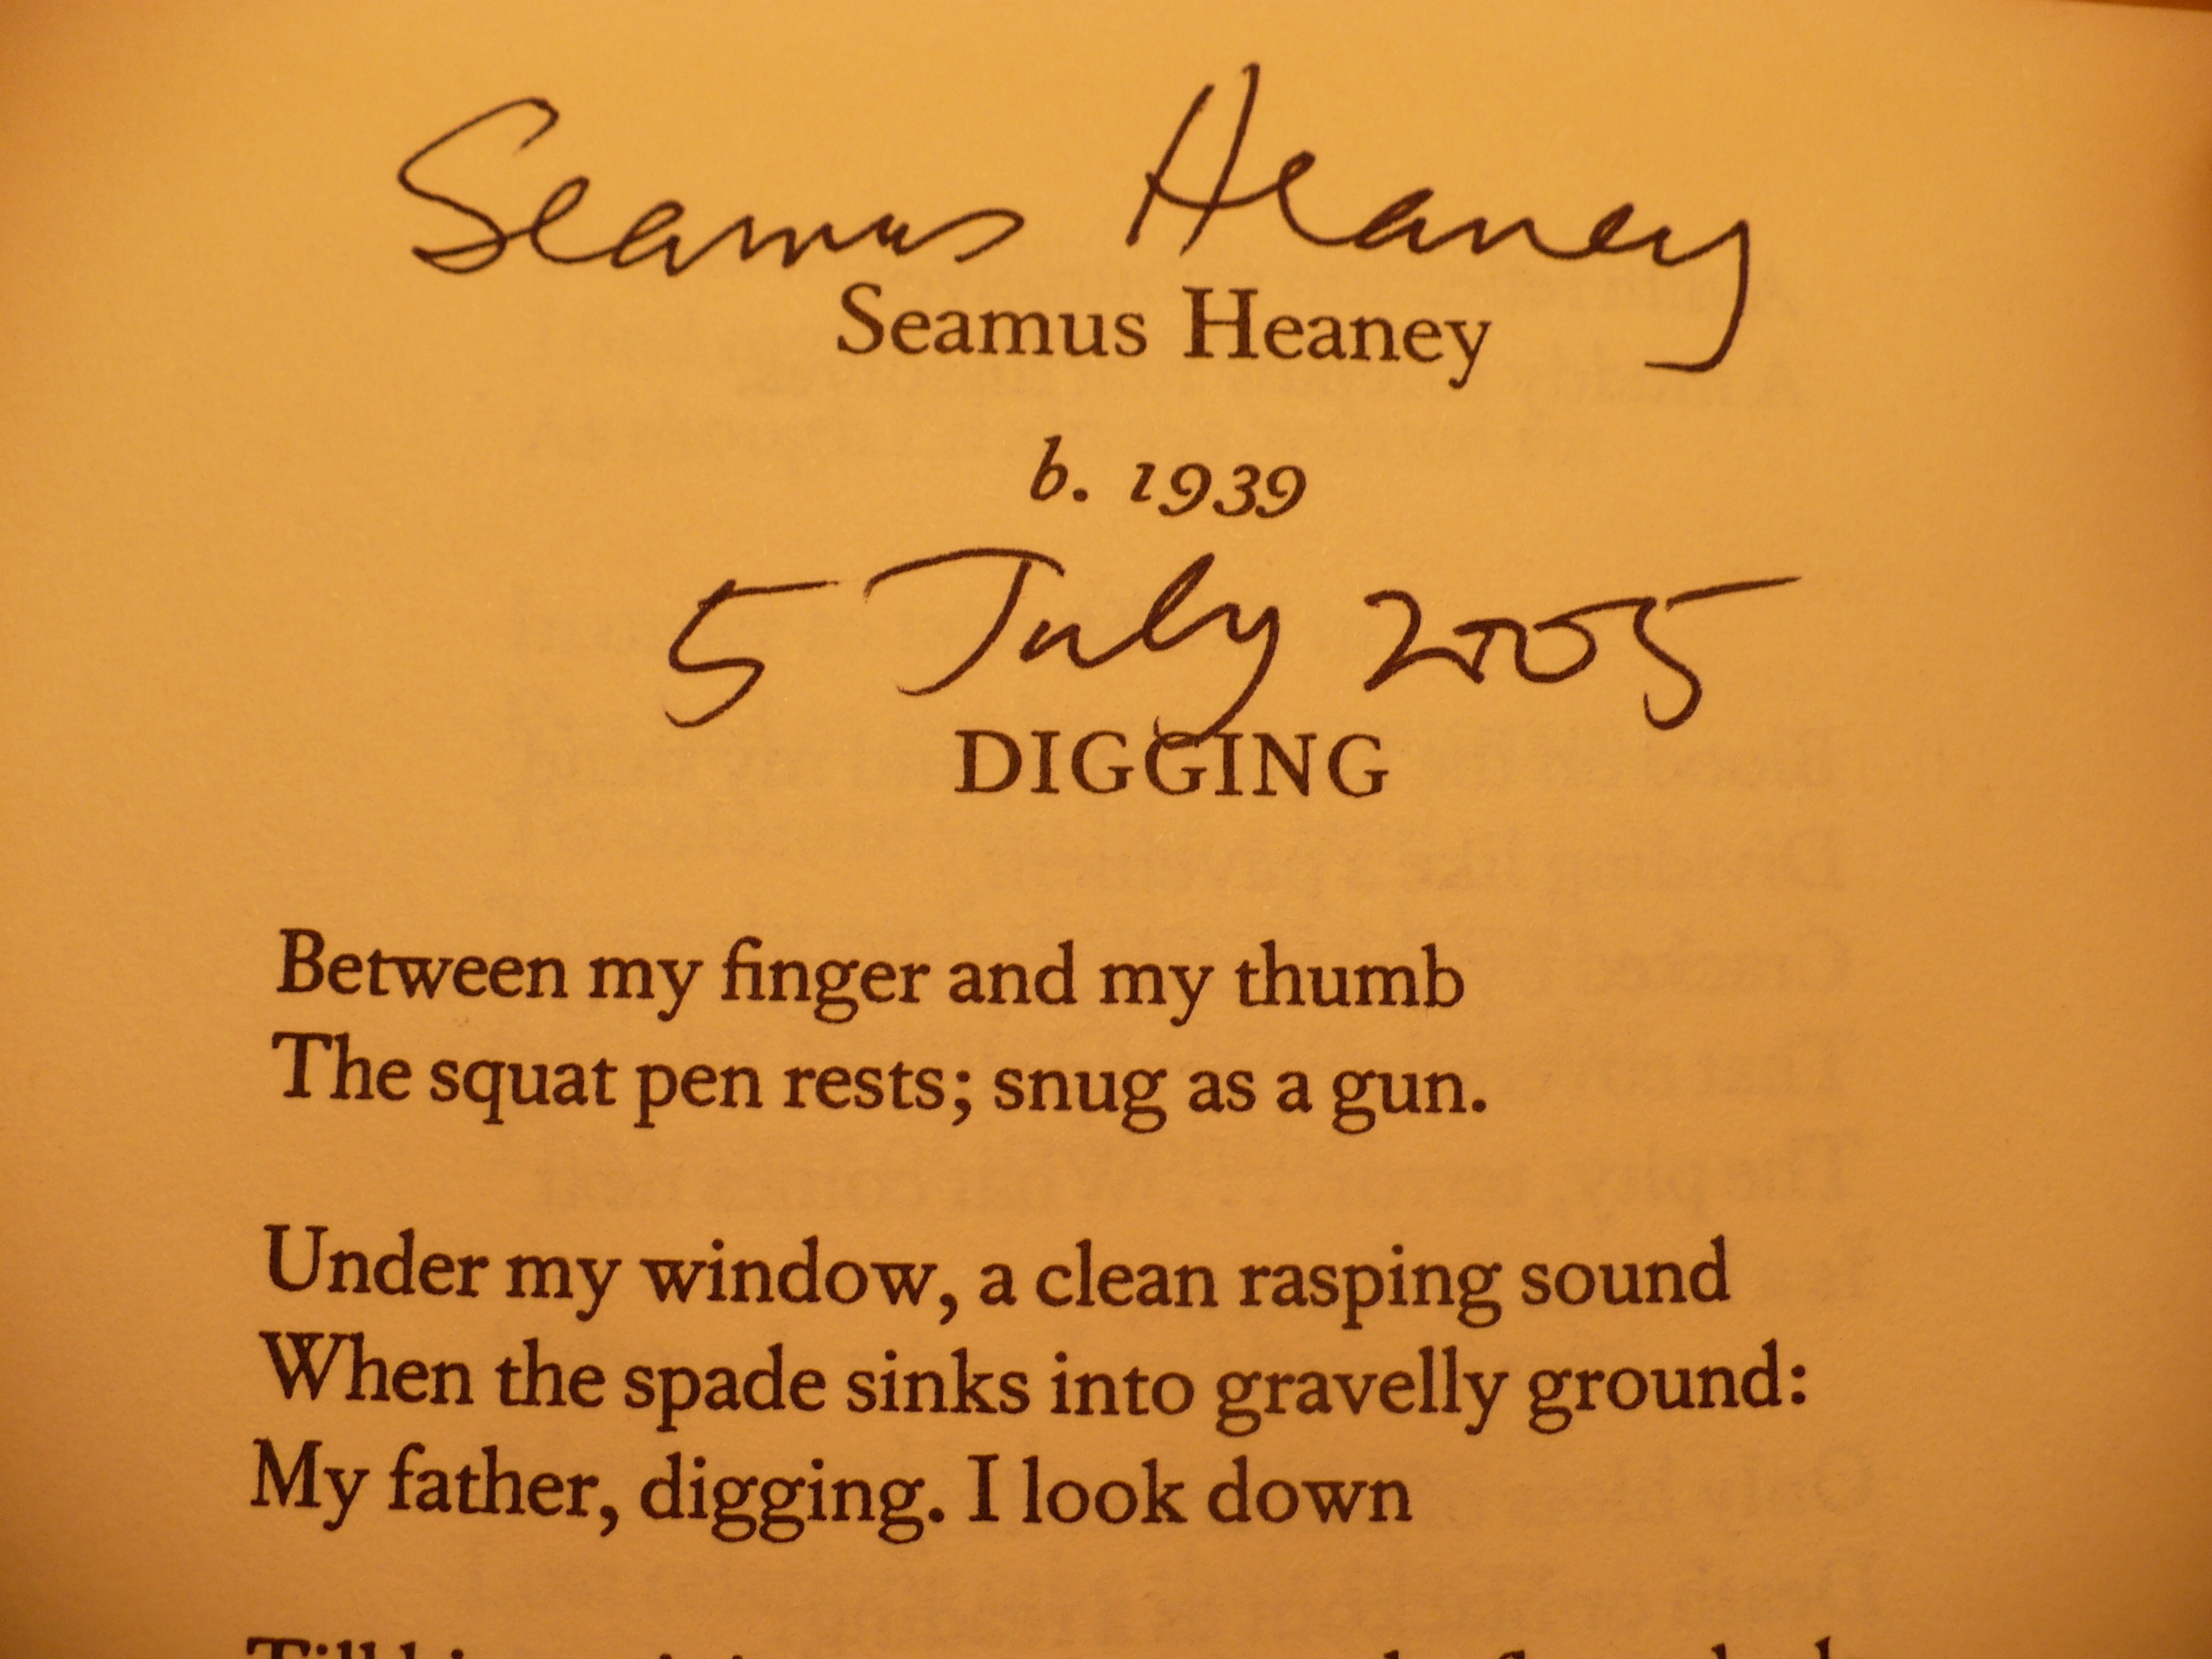 an analysis of the seamus heanerys digging in the modernist theme of mechanization The forge by seamus heaney analysis of a poem — mid term break by seamus heaney in mid term break by seamus heaney, how does the poet manage to convey a sense of his grief mid term break by seamus heaney is a poem in which the writer gives an.